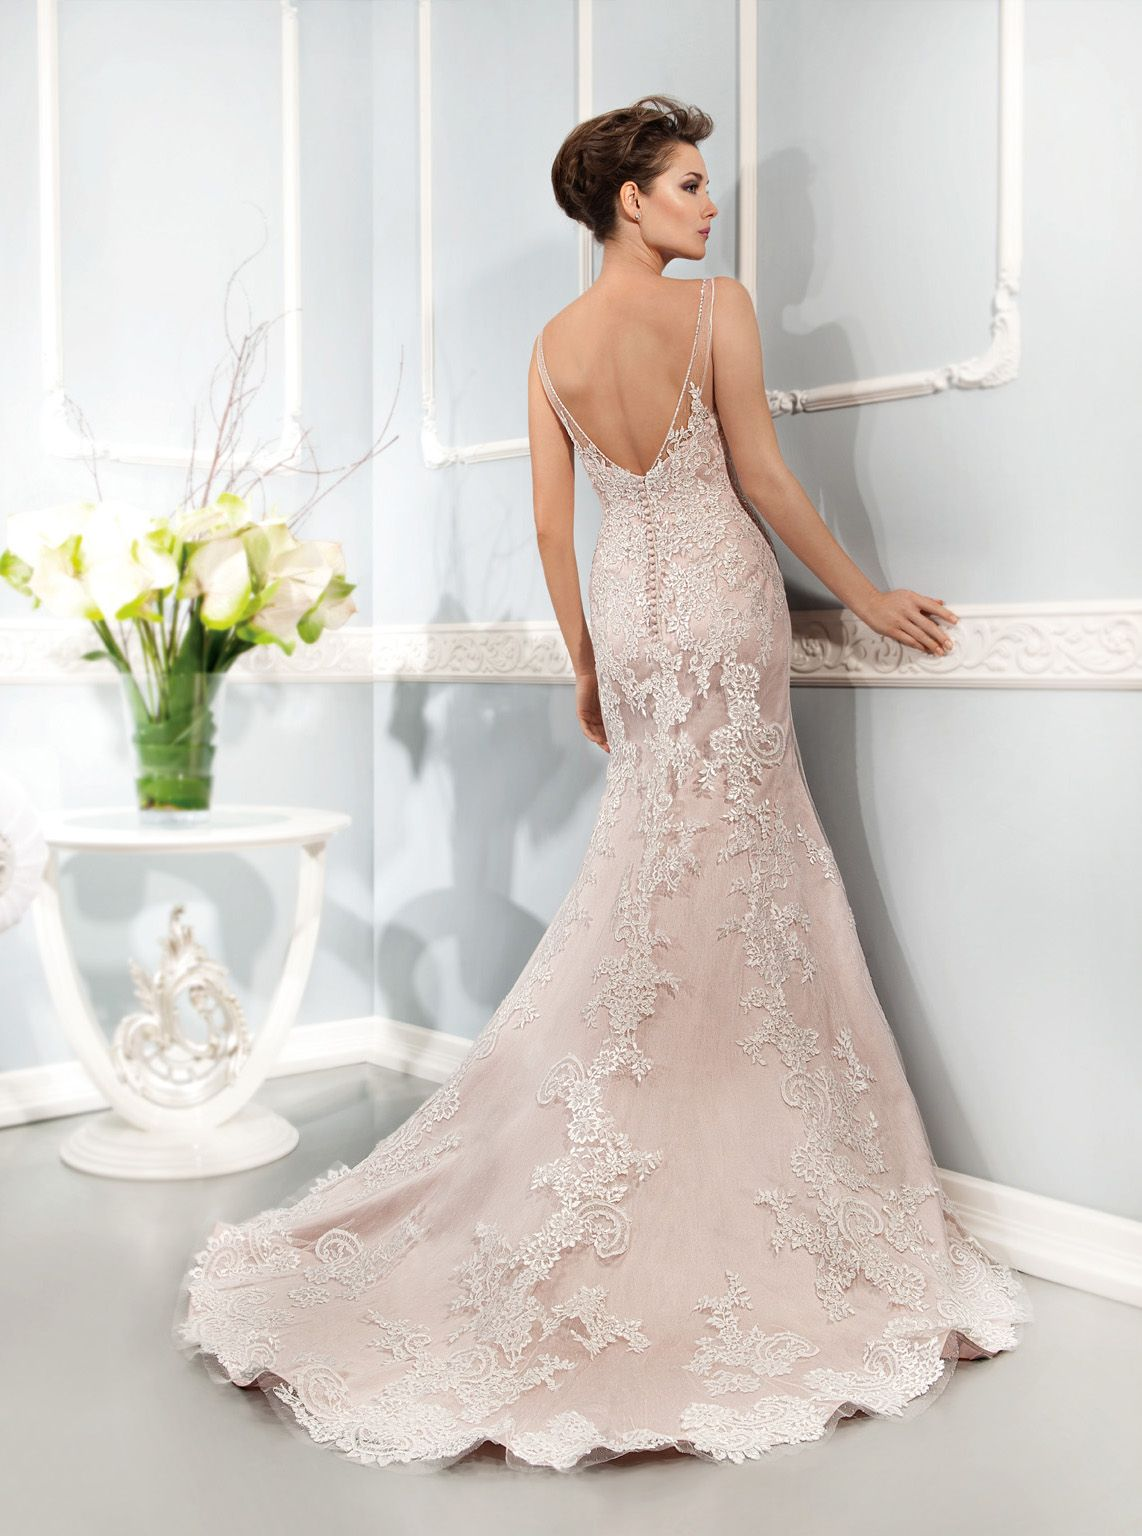 Vintage lace champagne wedding dress  Cosmobella Collection Official Web Site   Collection  Style